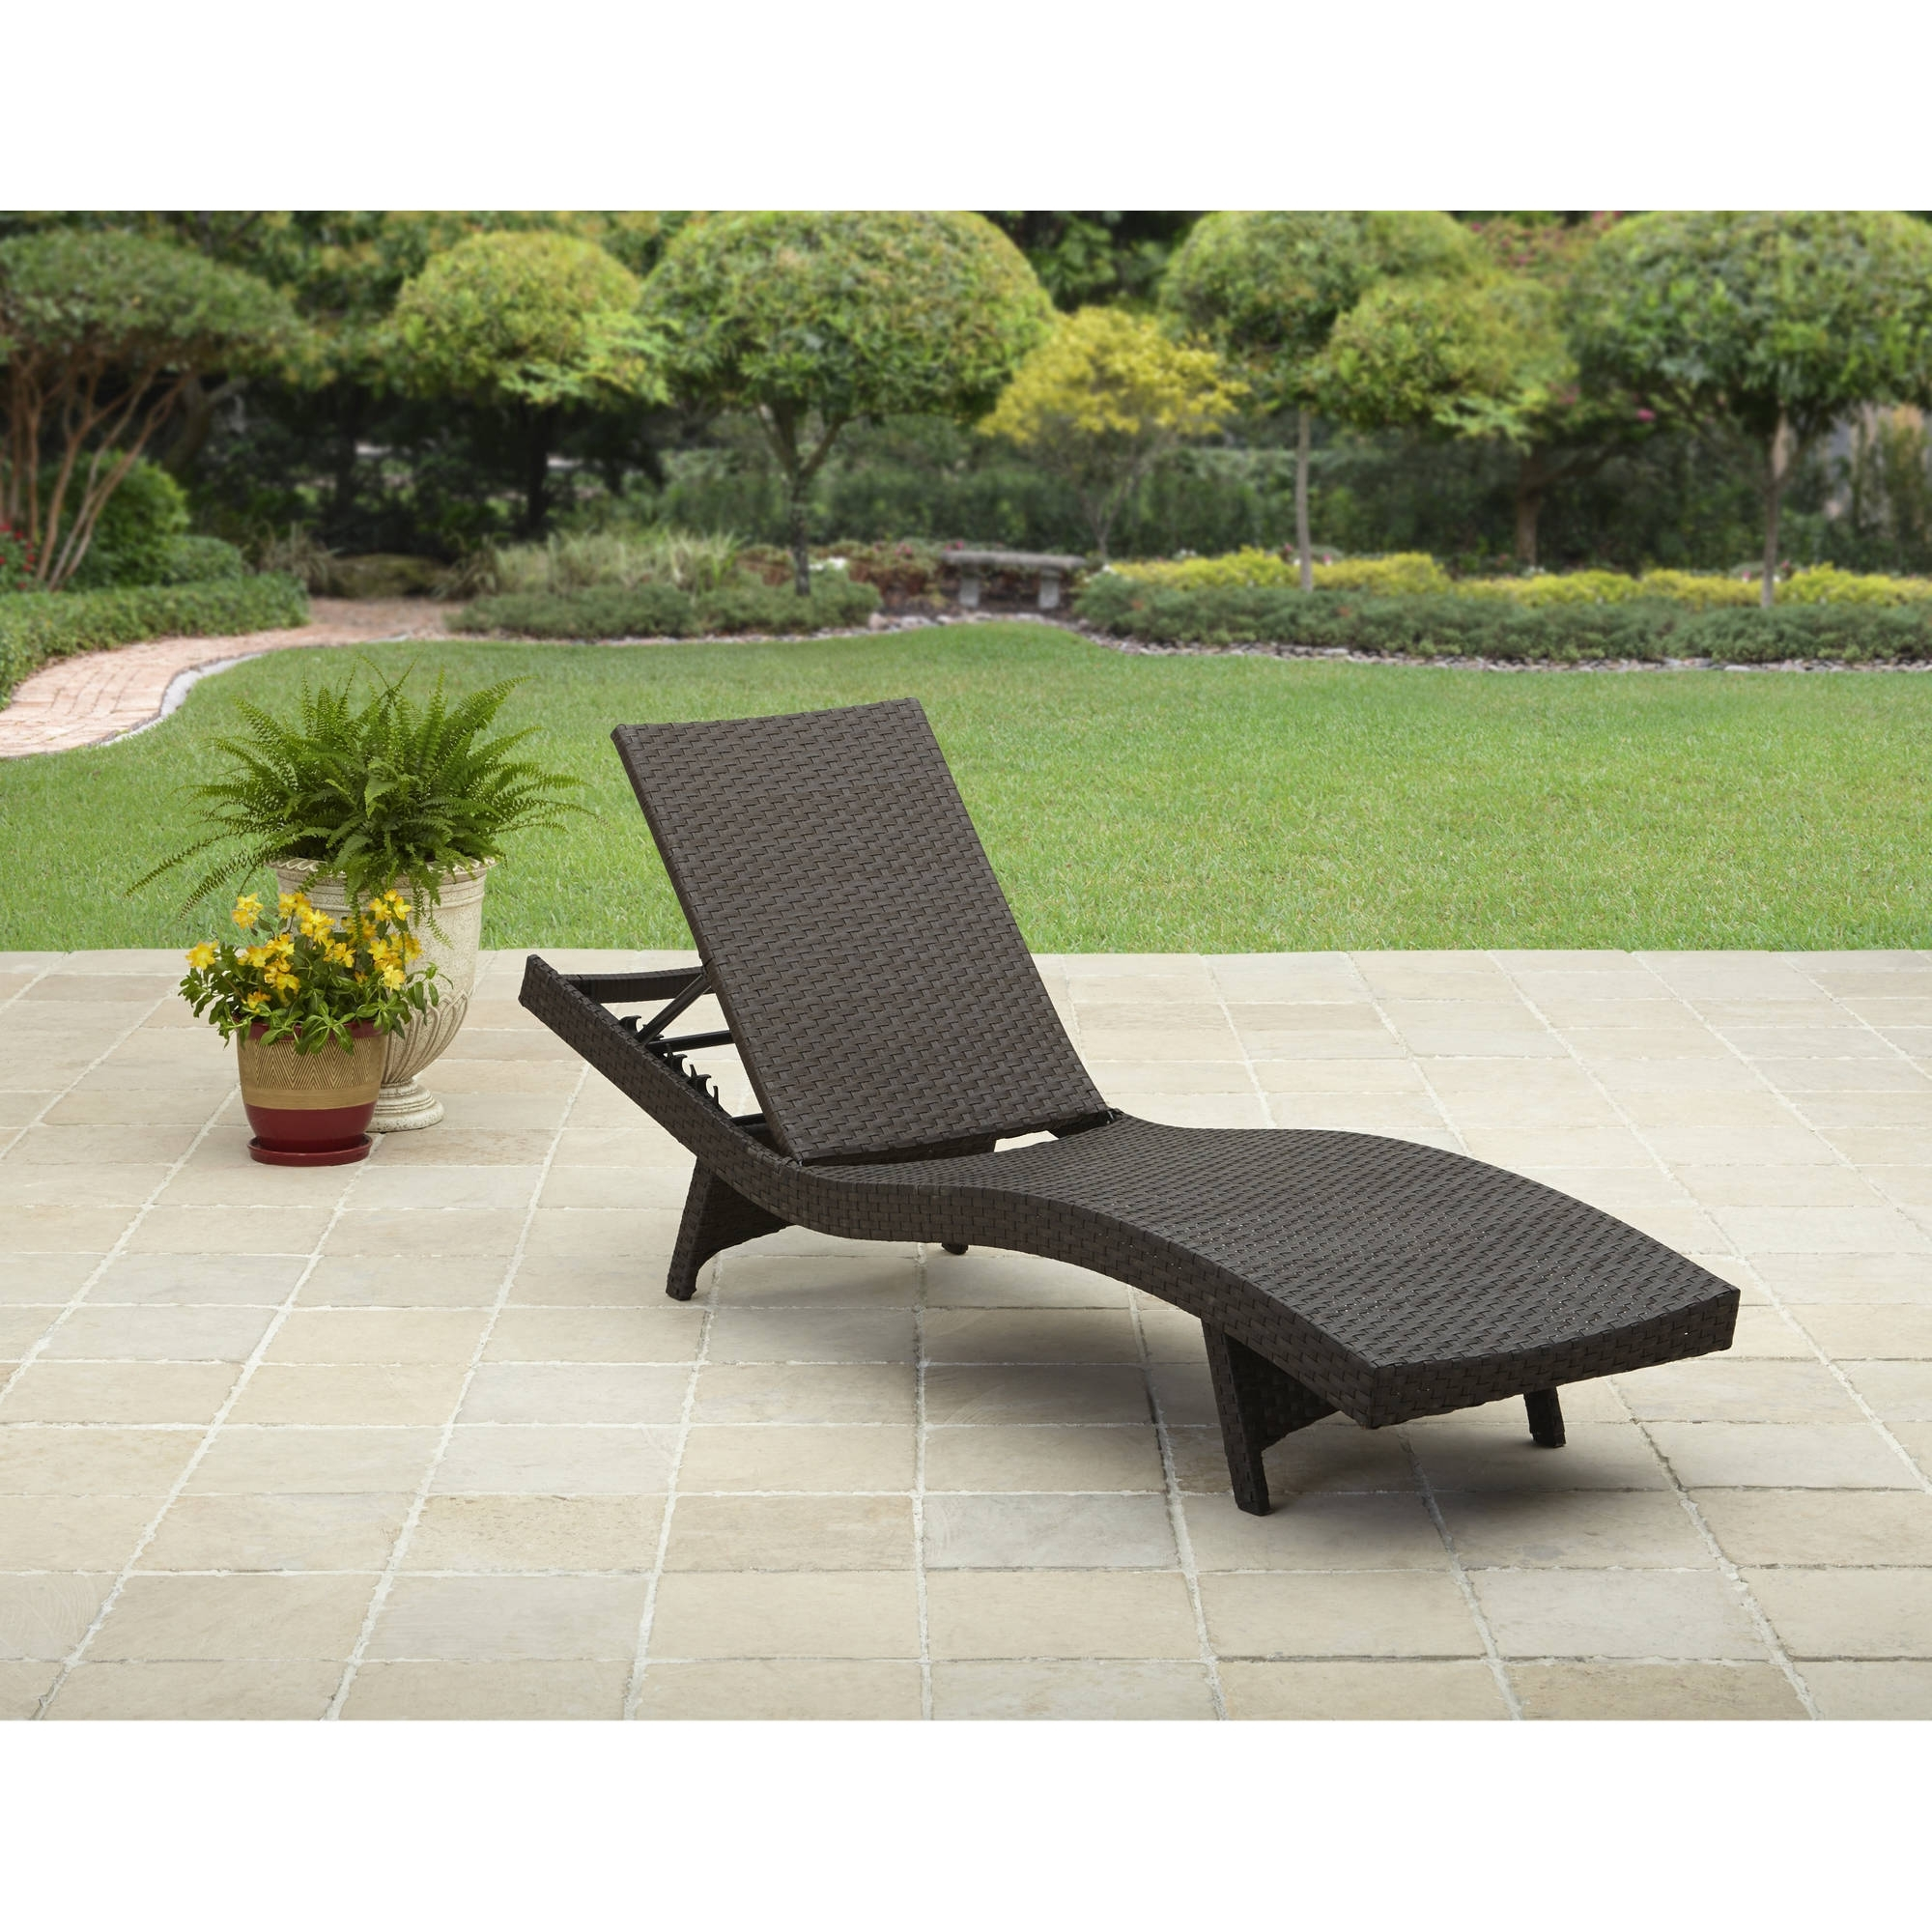 Better Homes And Gardens Avila Beach Chaise – Walmart Regarding Well Known Walmart Chaise Lounge Chairs (View 1 of 15)